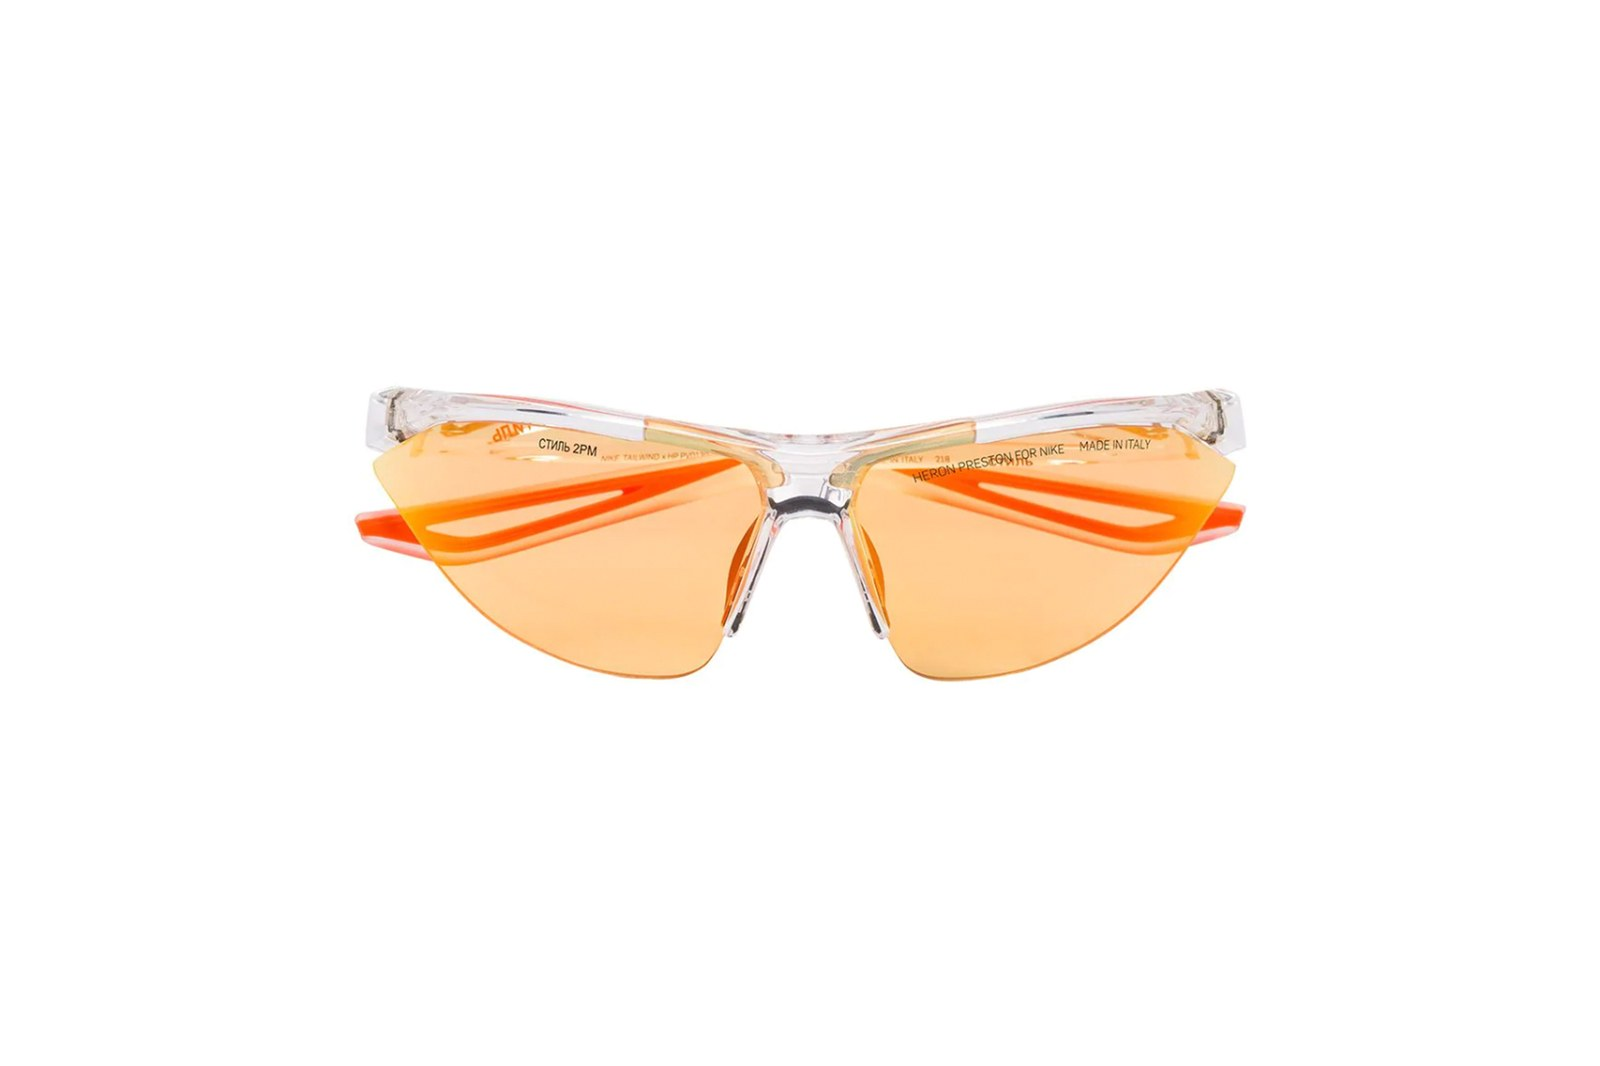 Kính Heron Preston x Nike transparent Tailwind sunglasses